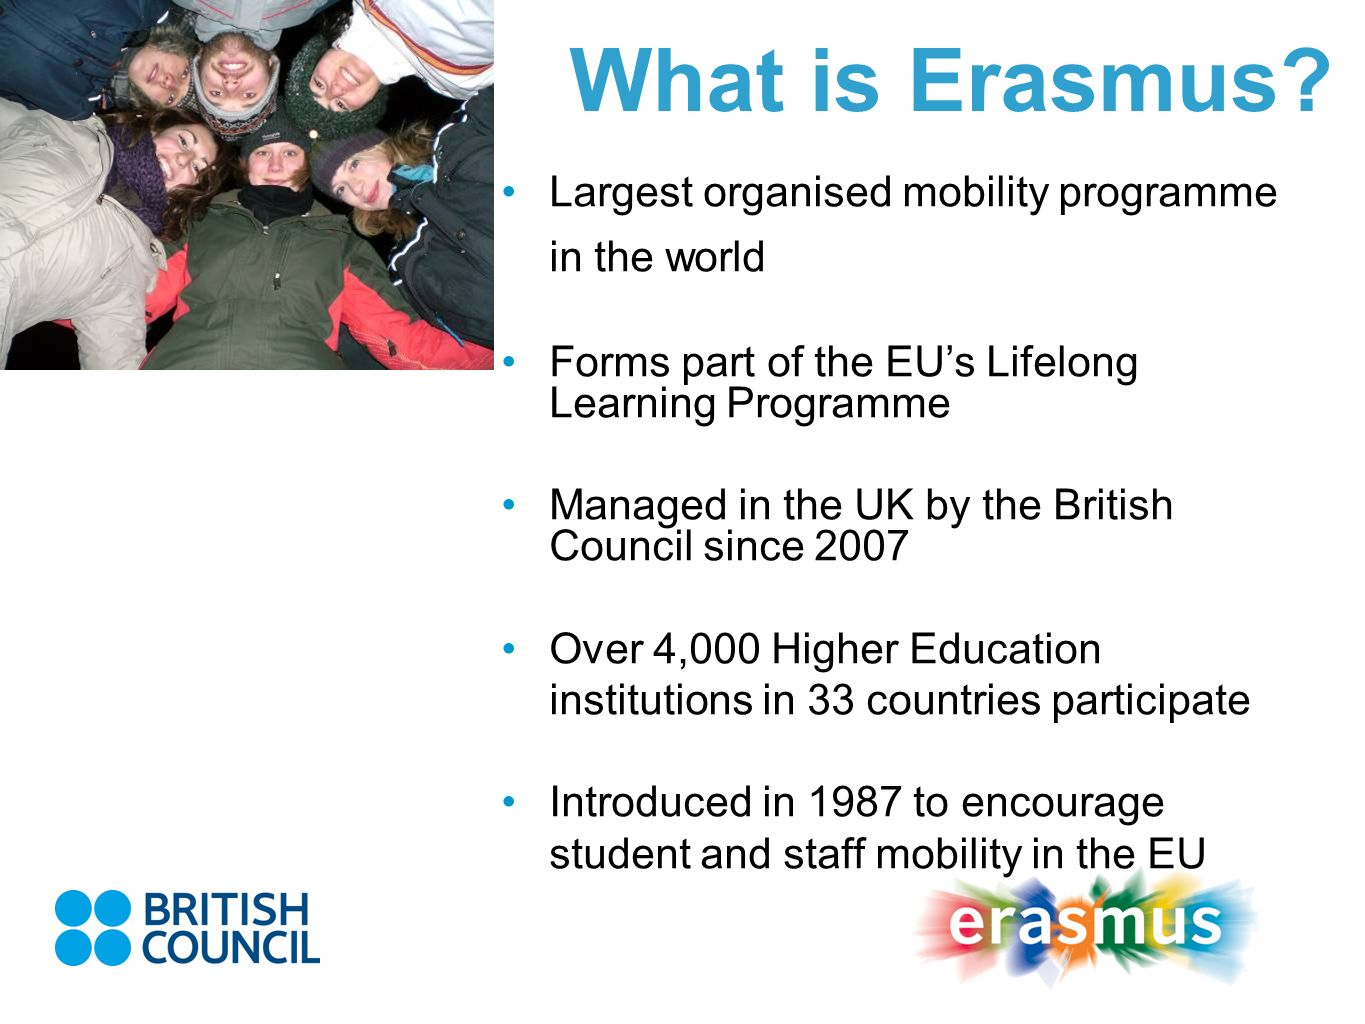 What is Erasmus Largest organised mobility programme in the world